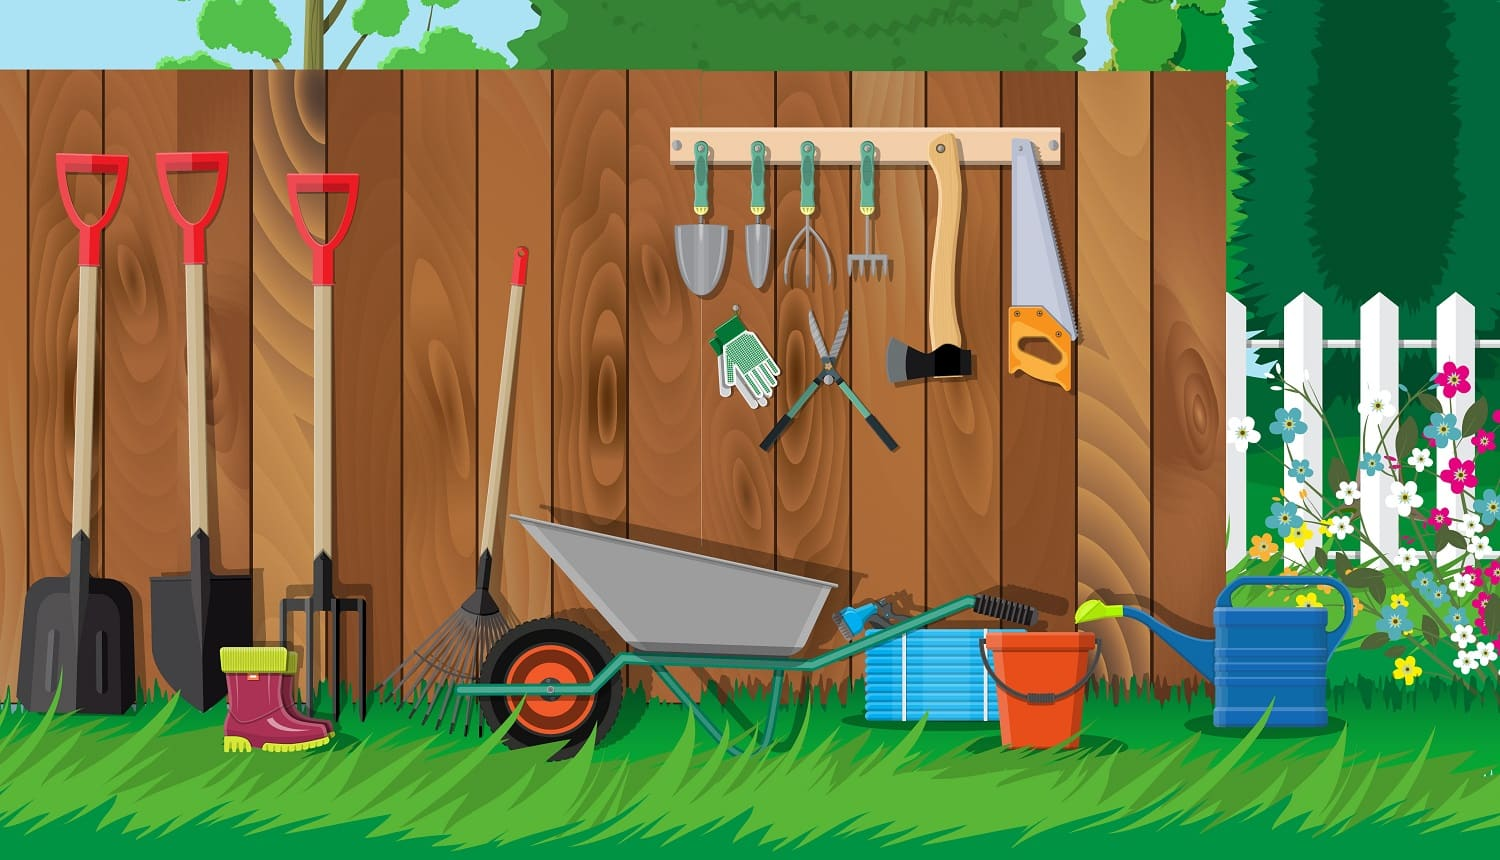 Gardening tools set. Equipment for garden. Saw bucket ax wheelbarrow hose rake can shovel secateurs gloves boots. Wooden fence, flower, grass, tree, sky, cloud. Vector illustration in flat style